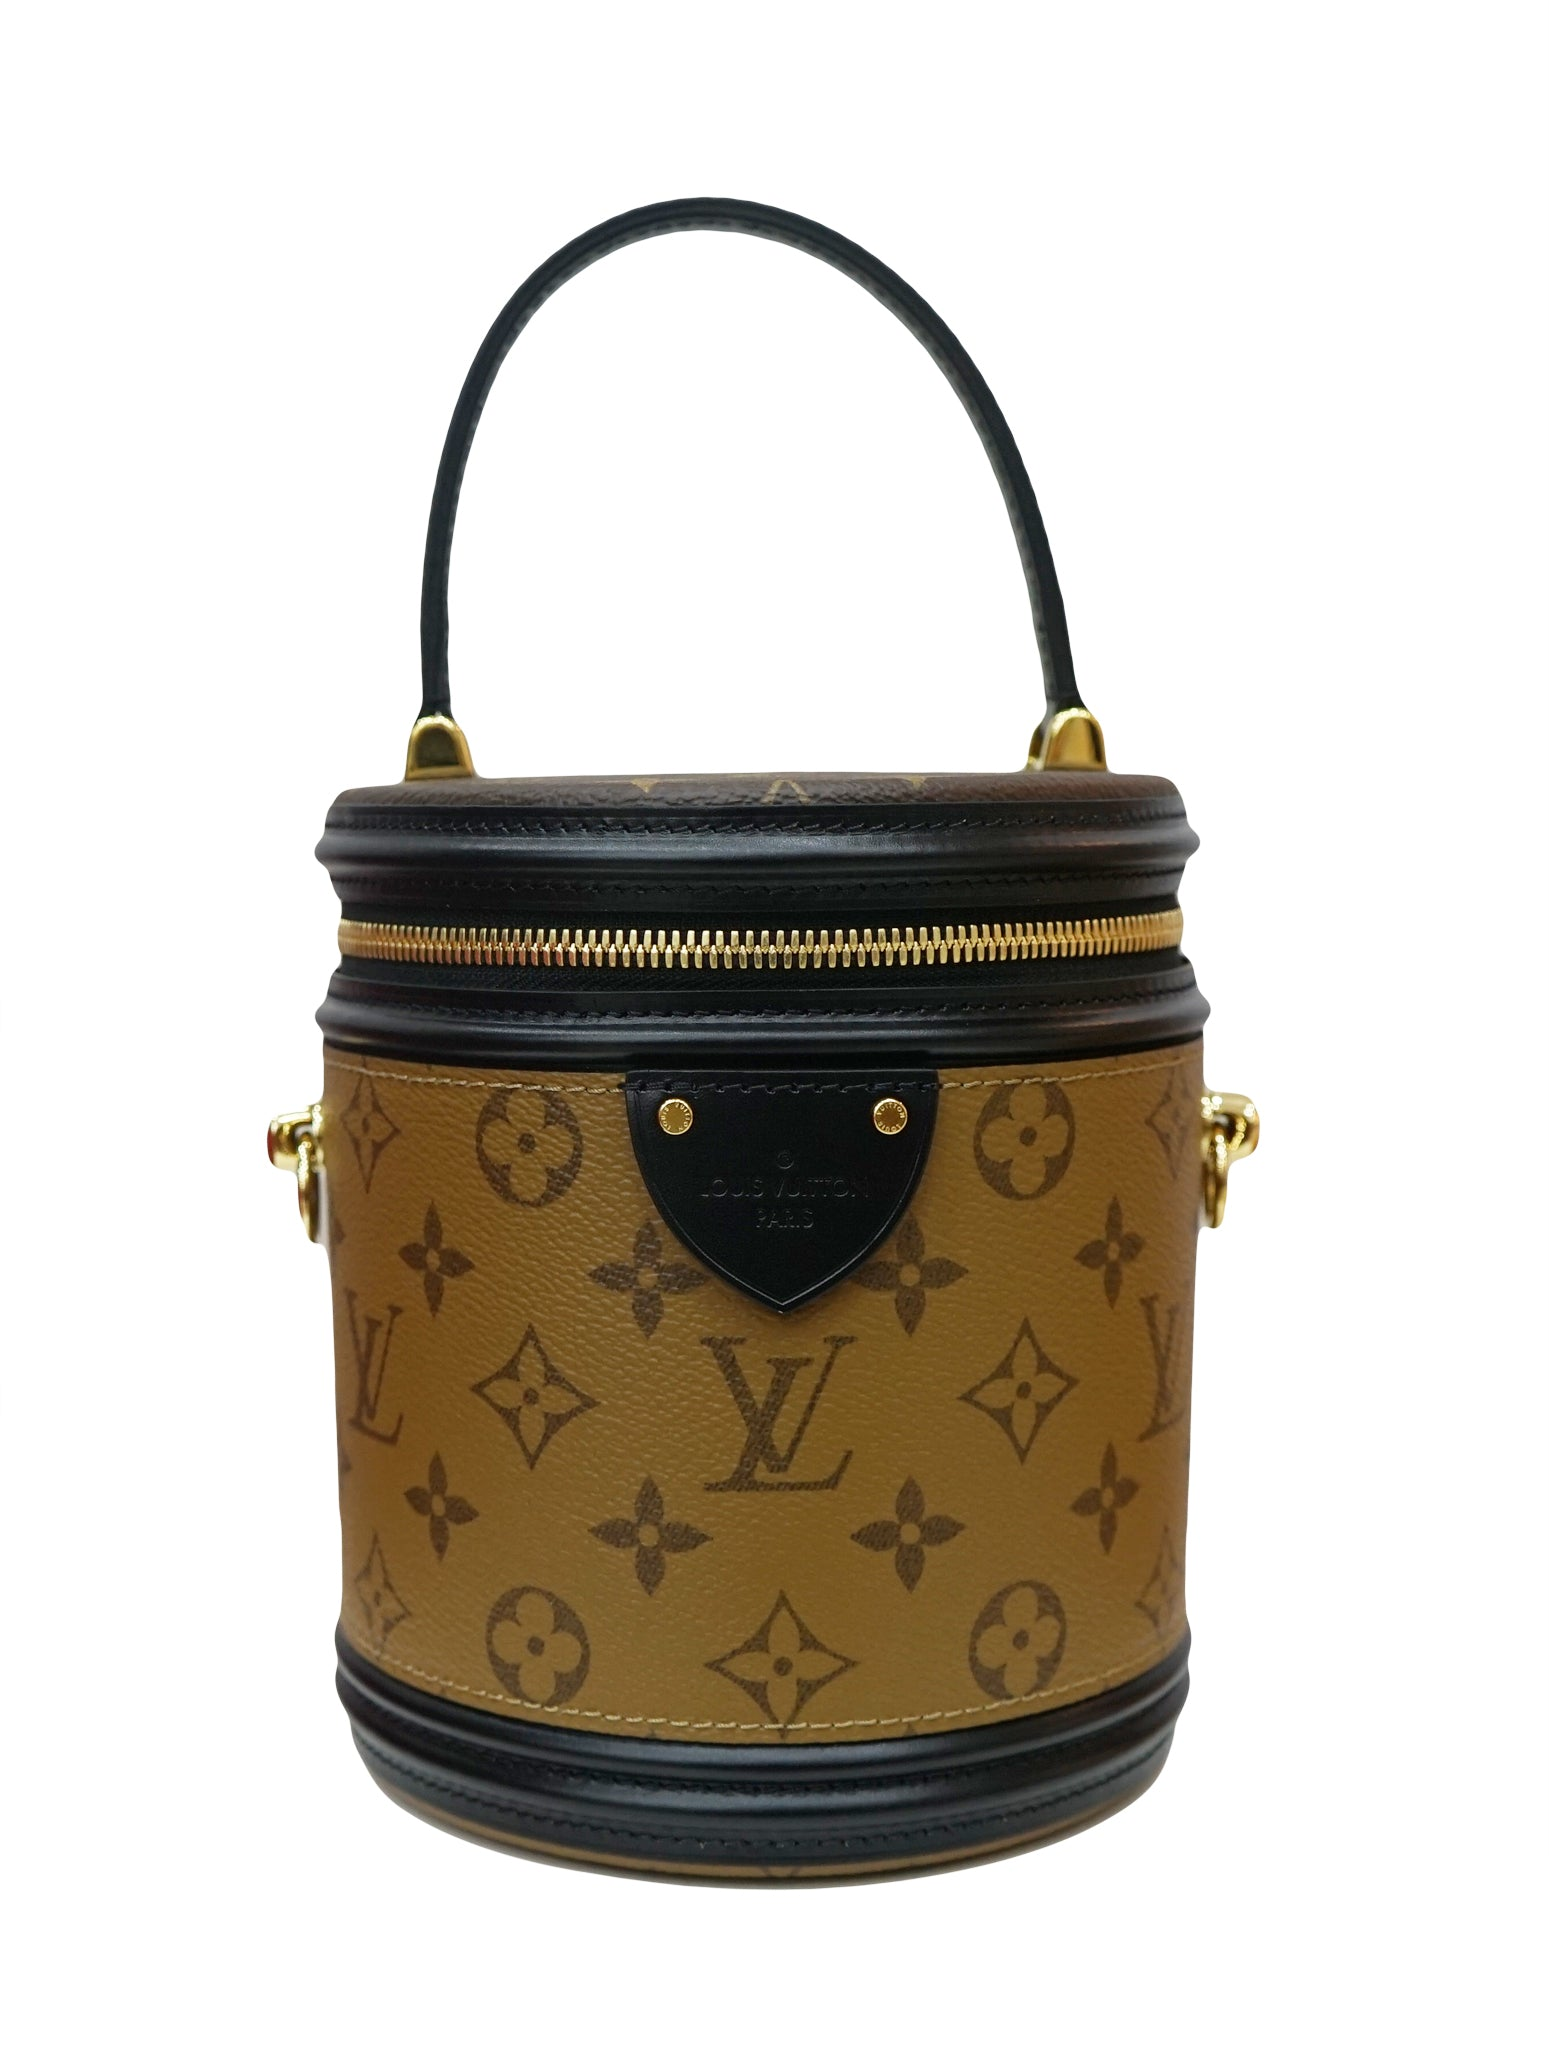 MONOGRAM REVERSE COATED CANNES BAG